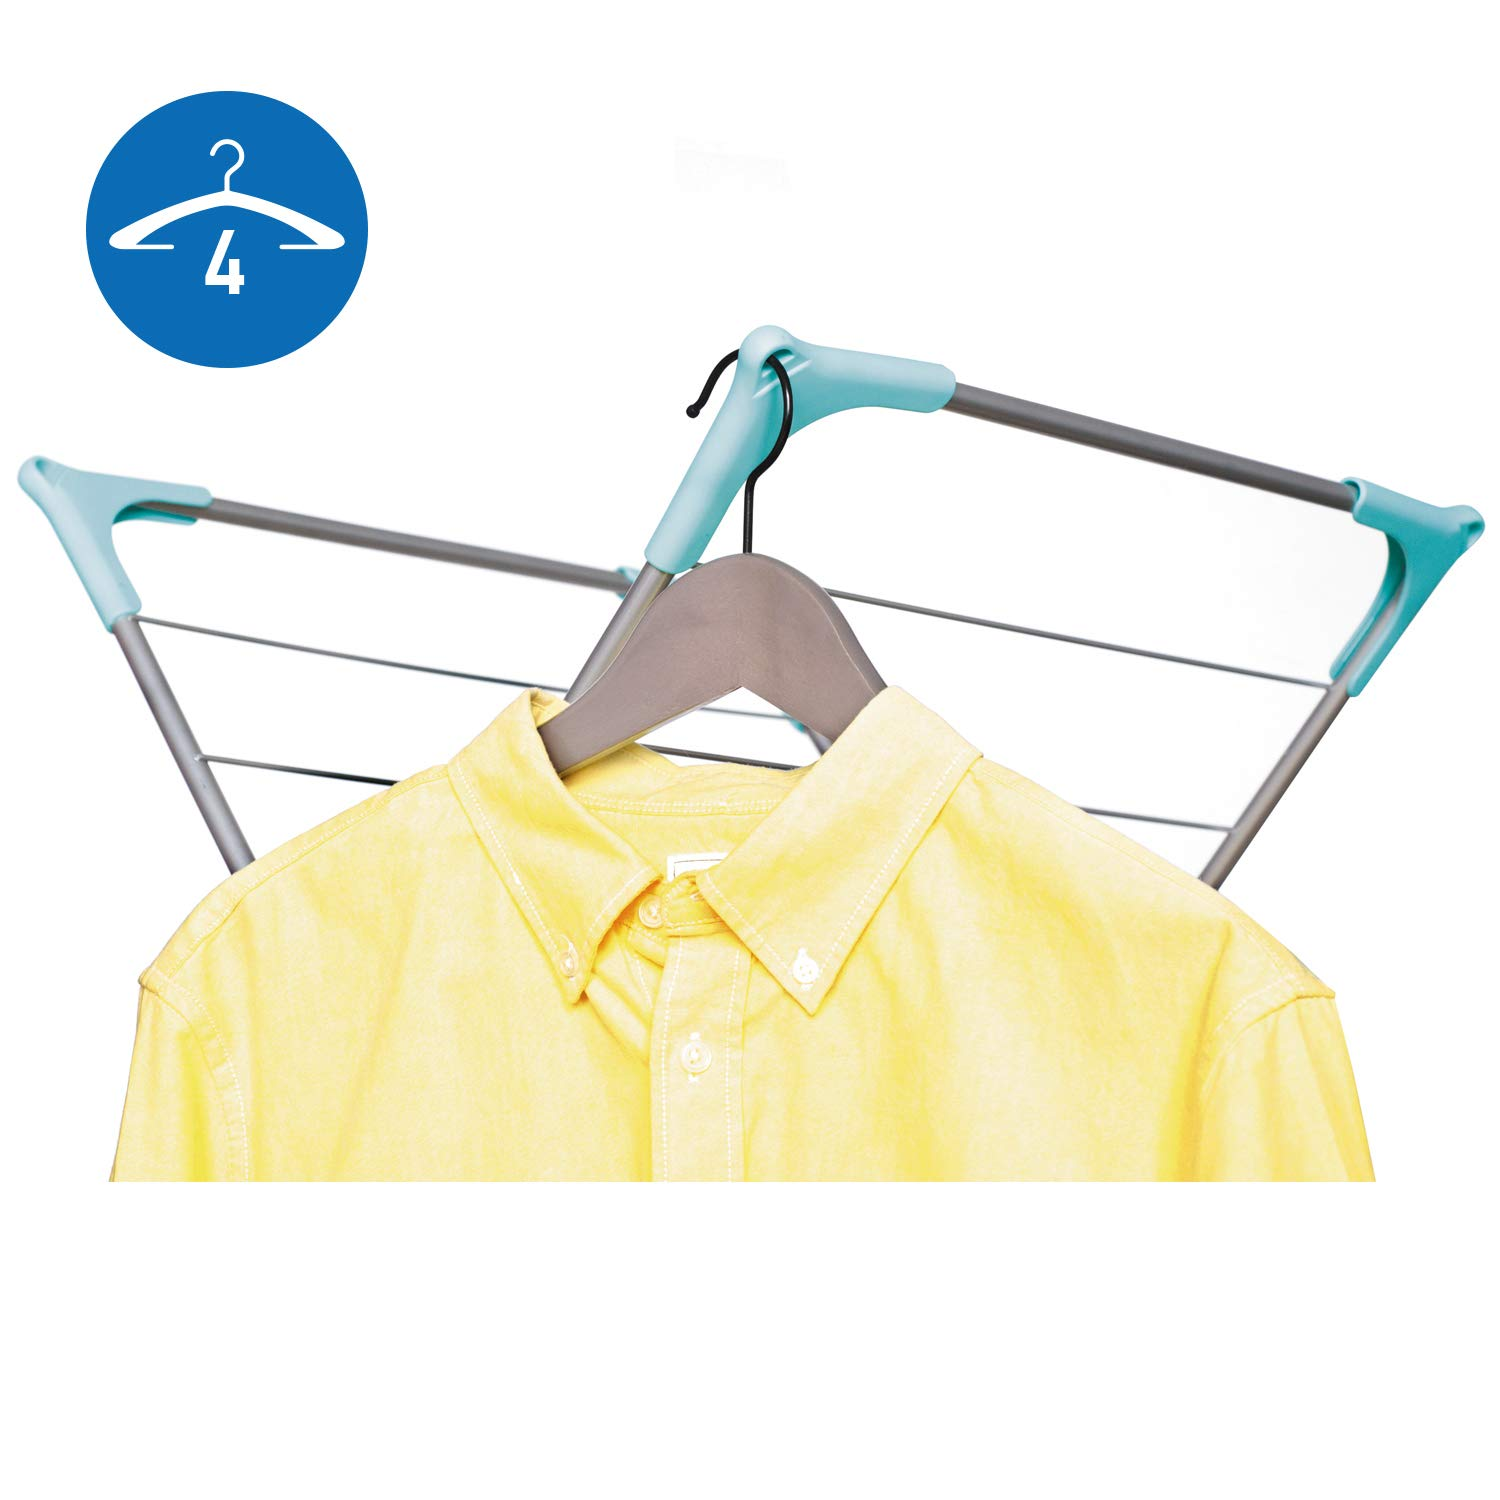 ArtMoon Niagara Clothes Airer Laundry Dryer Foldable Compact 130X48.5X46 cm